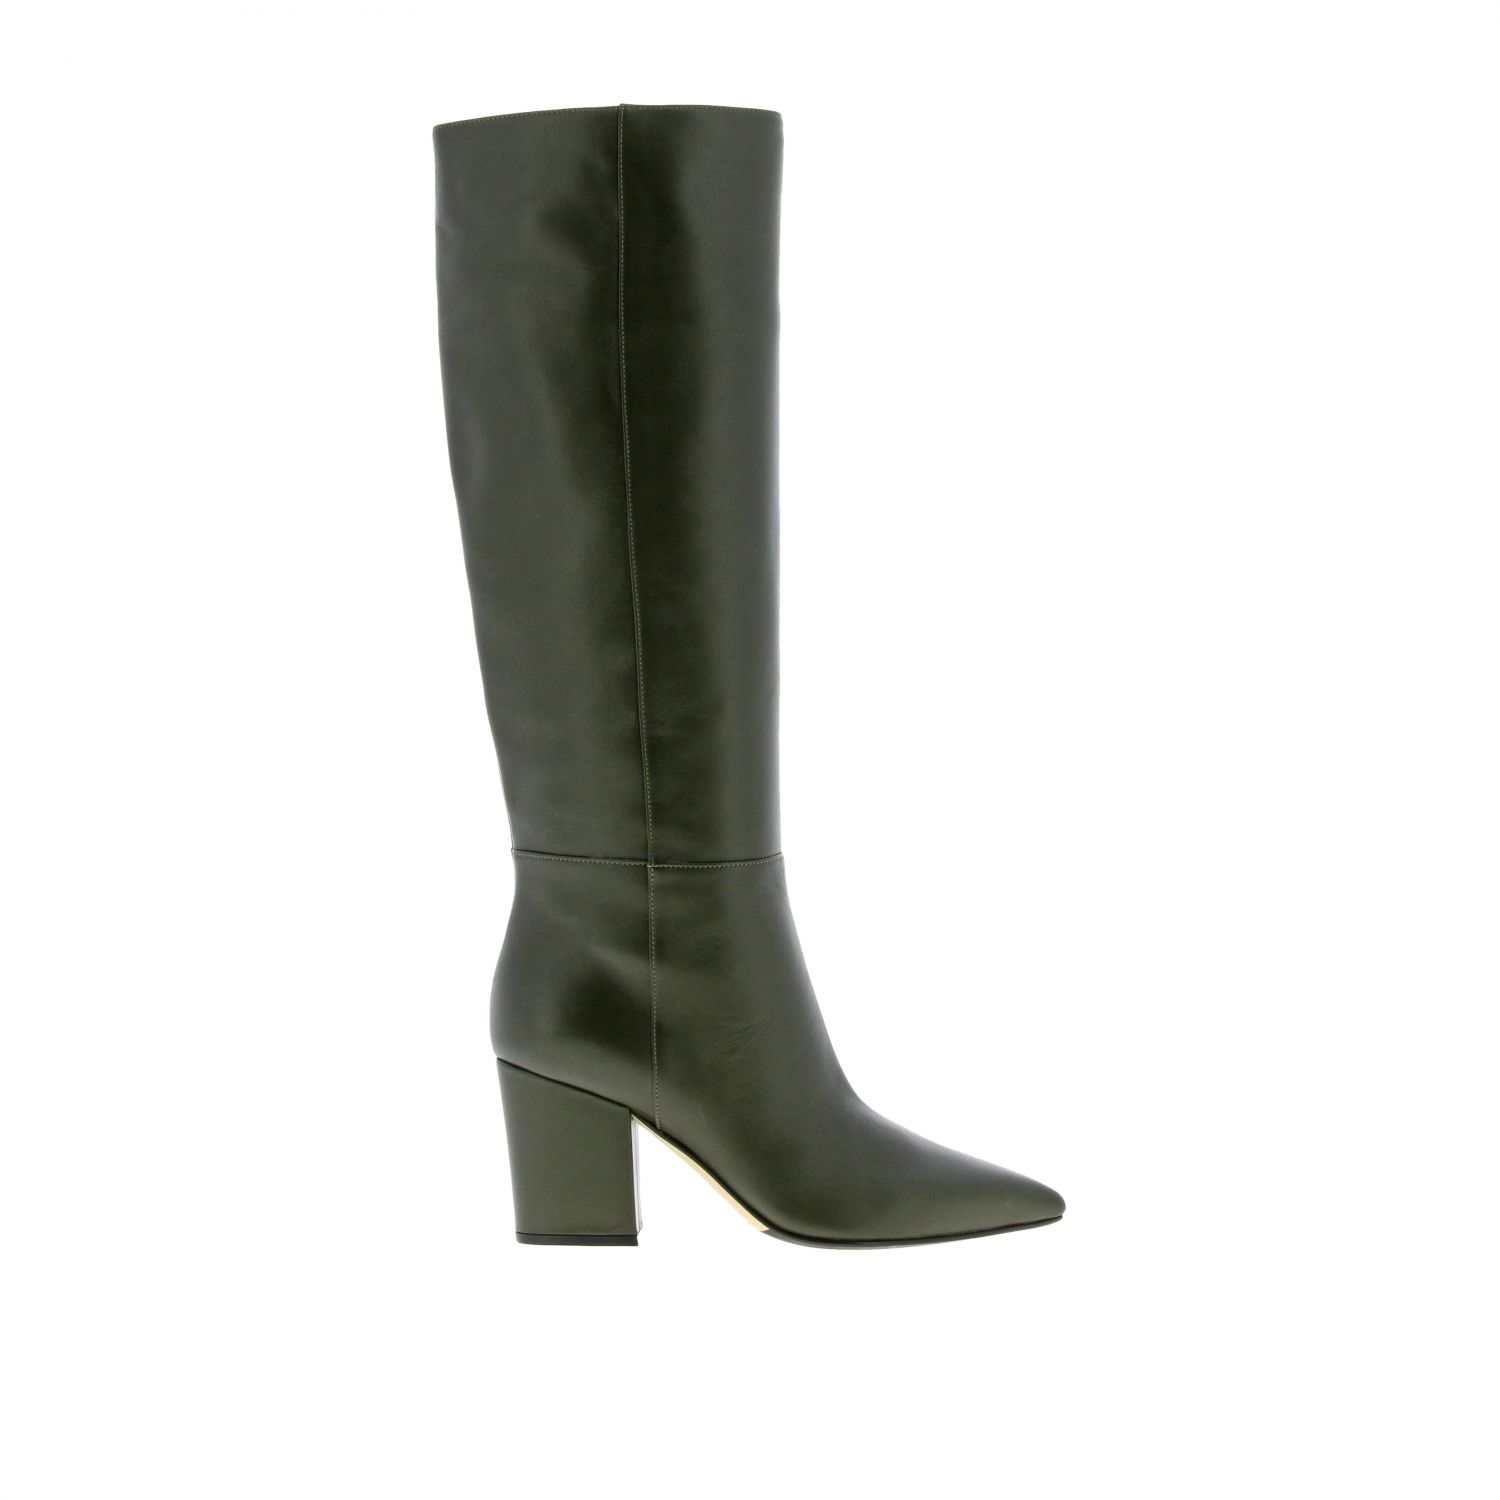 Boots women Sergio Rossi green 1